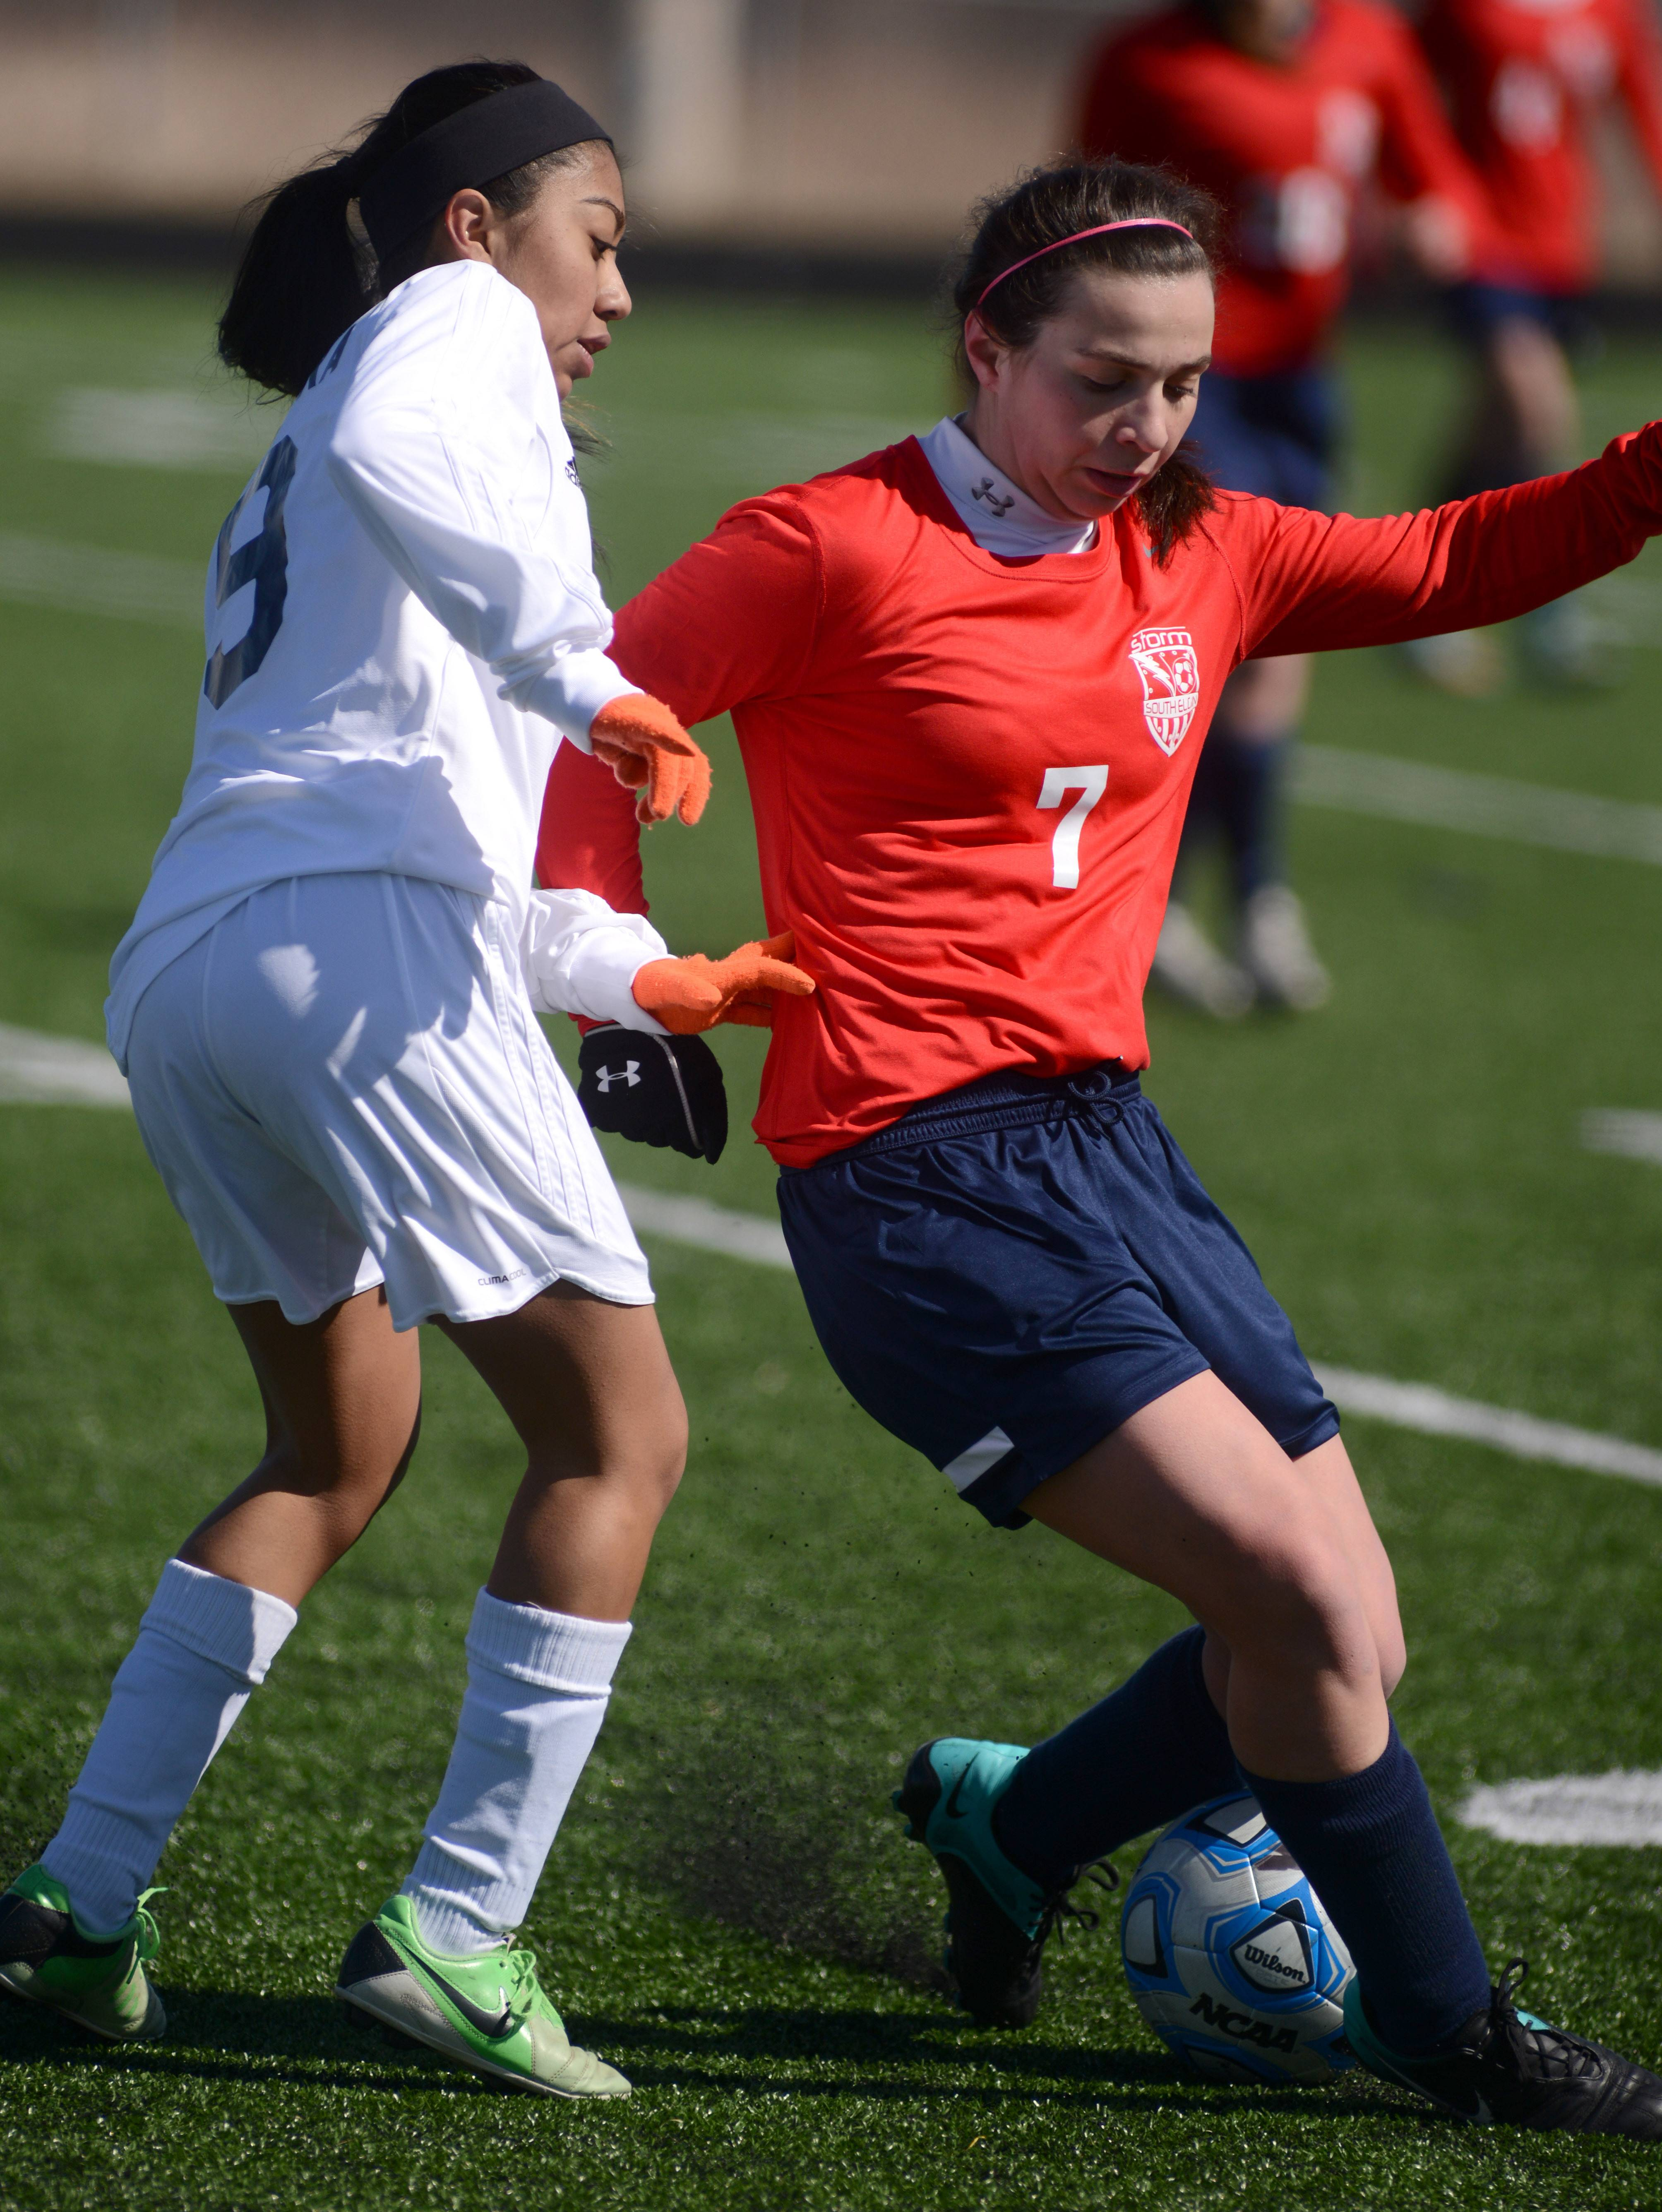 West Chicago's Karen Ibarra, left, and South Elgin's Melissa Greco battle for the ball in the first half of the championship game of the South Elgin tournament in Streamwood Friday.